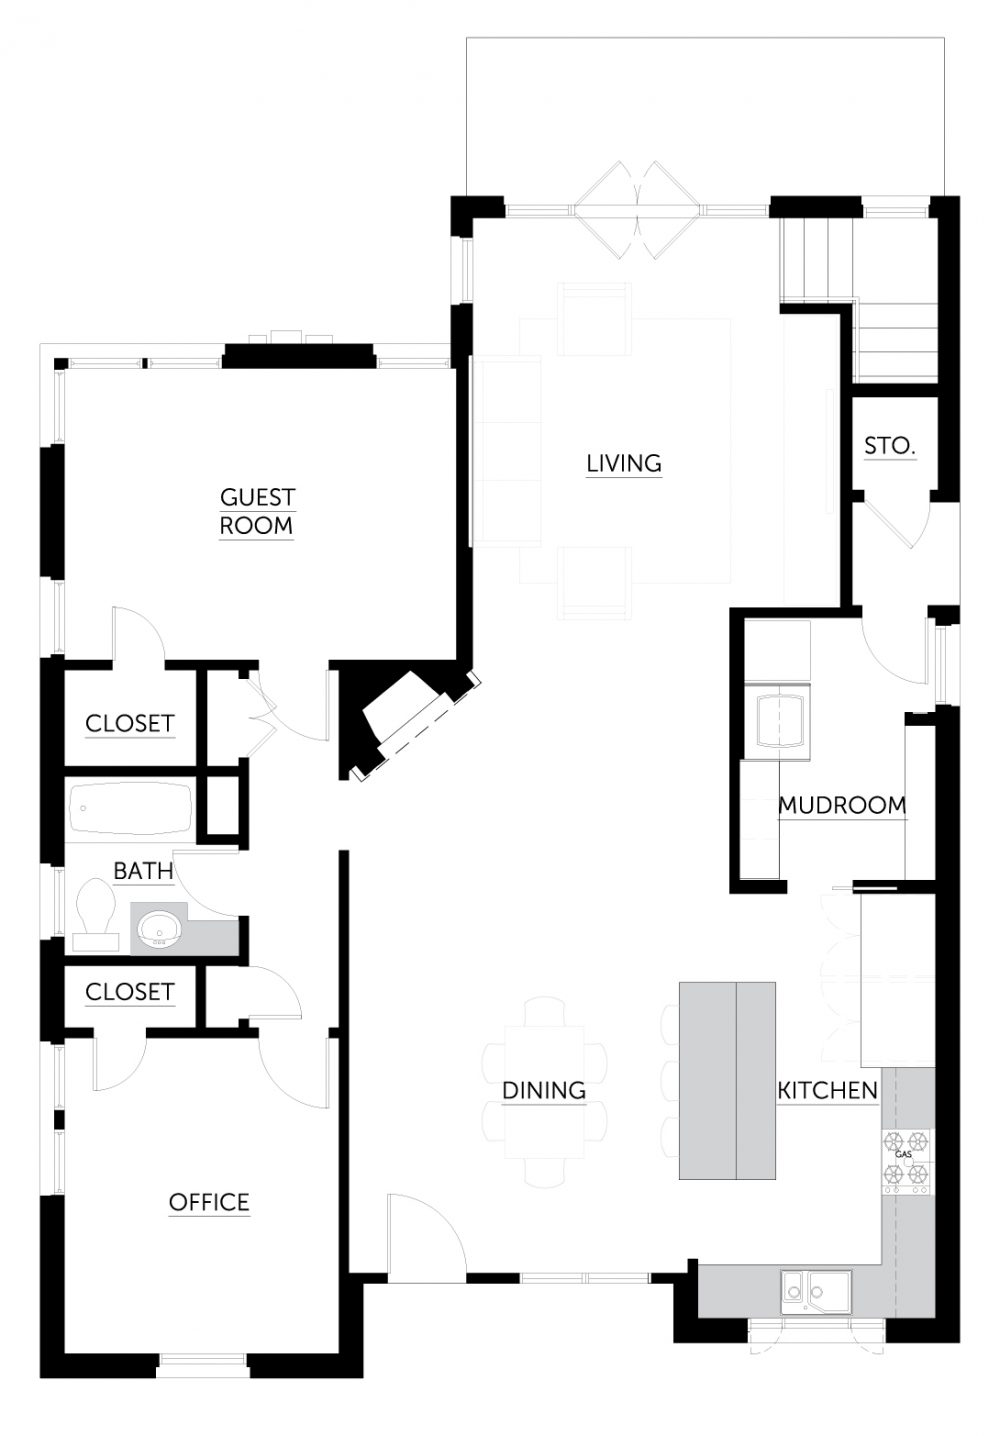 COUCH-After-L1-Plan Floorplan